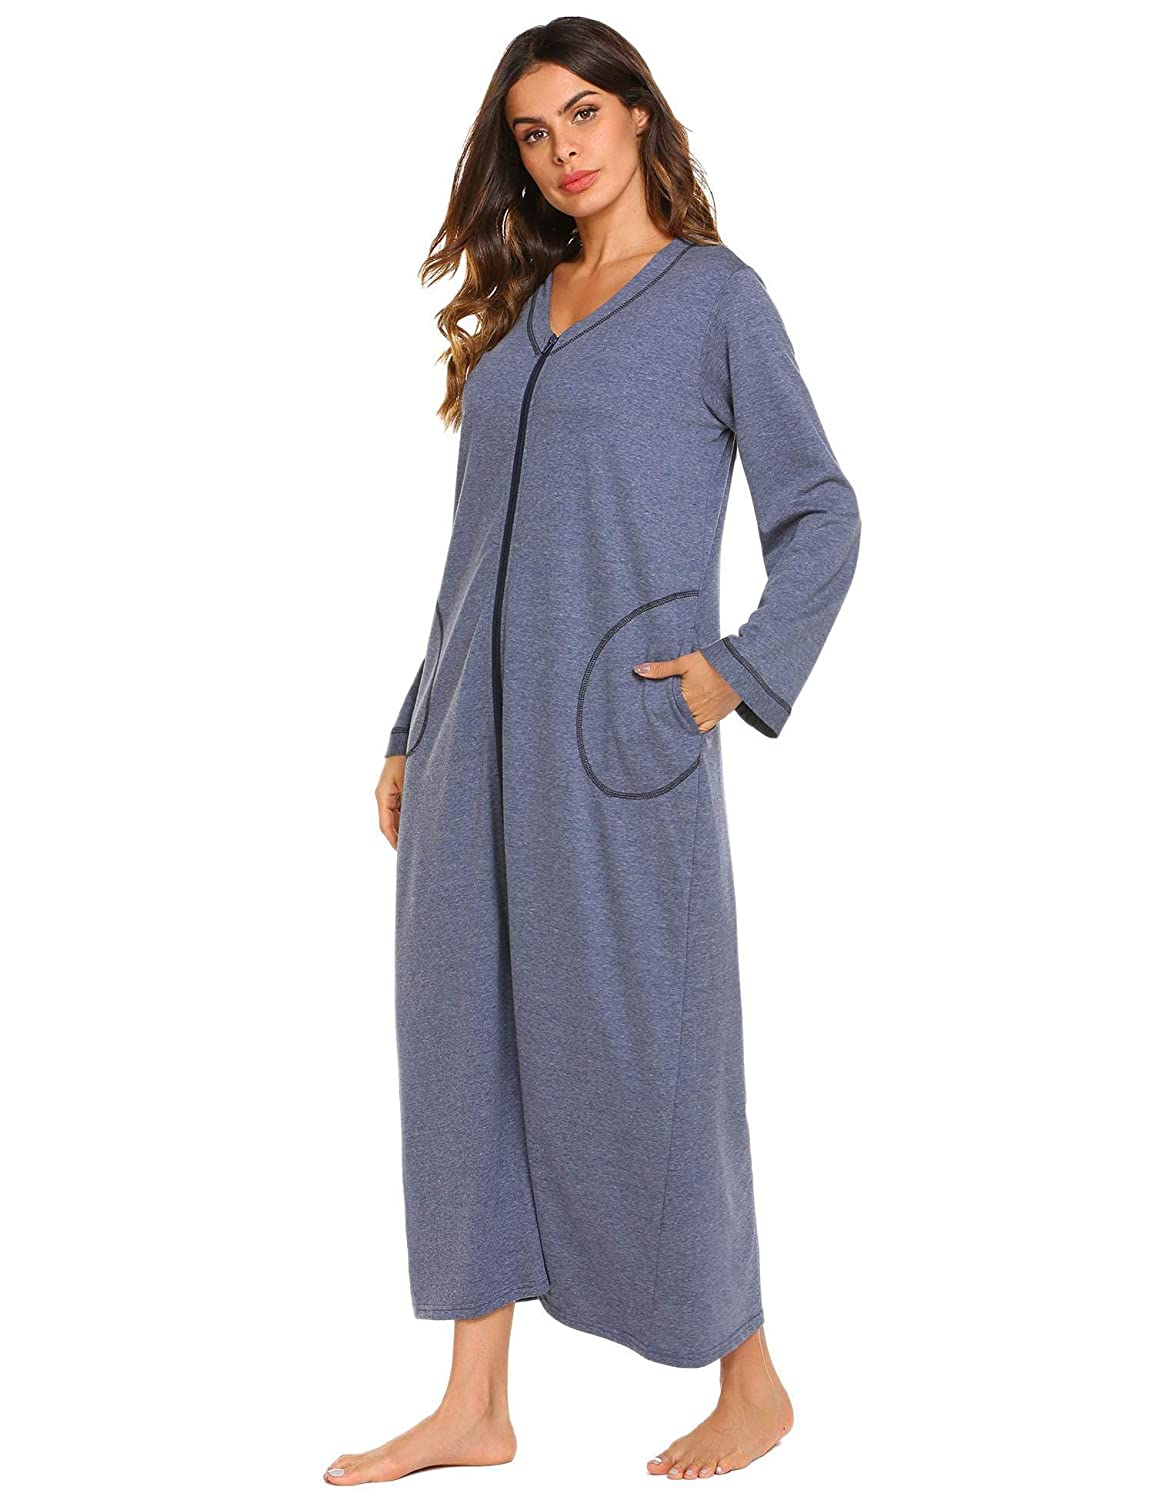 95ea81ade0d Soft and comfy sleeping gown nightwear features V-neck,long sleeve pajamas,full  front zipper closure type,casual style with ...